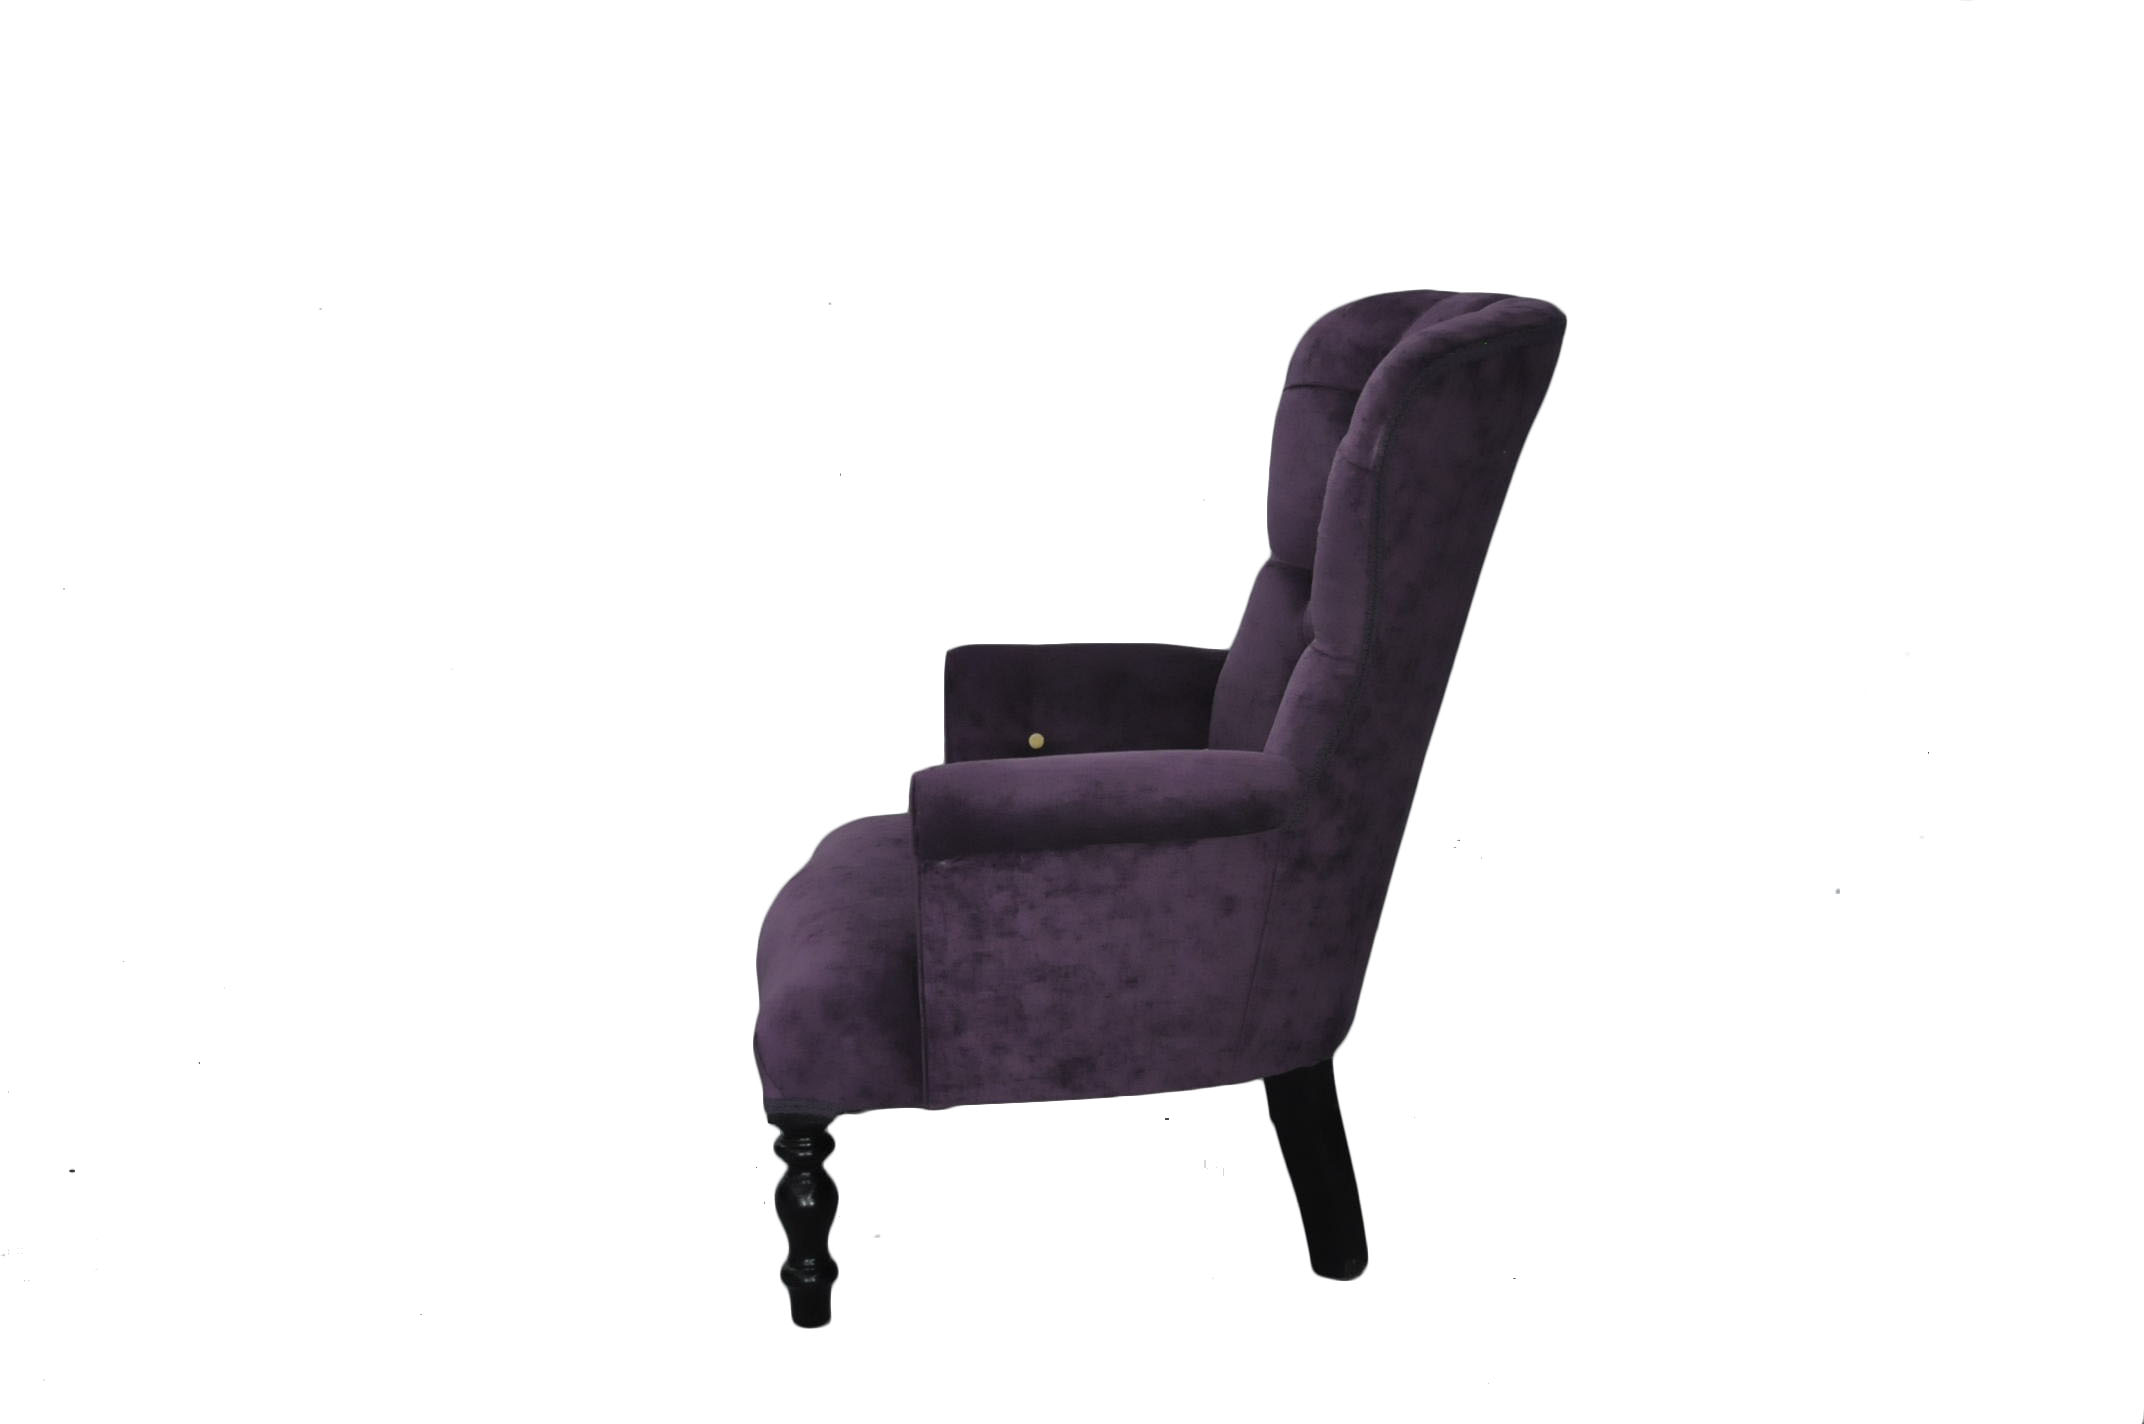 fauteuil velours mauve demeure et jardin. Black Bedroom Furniture Sets. Home Design Ideas